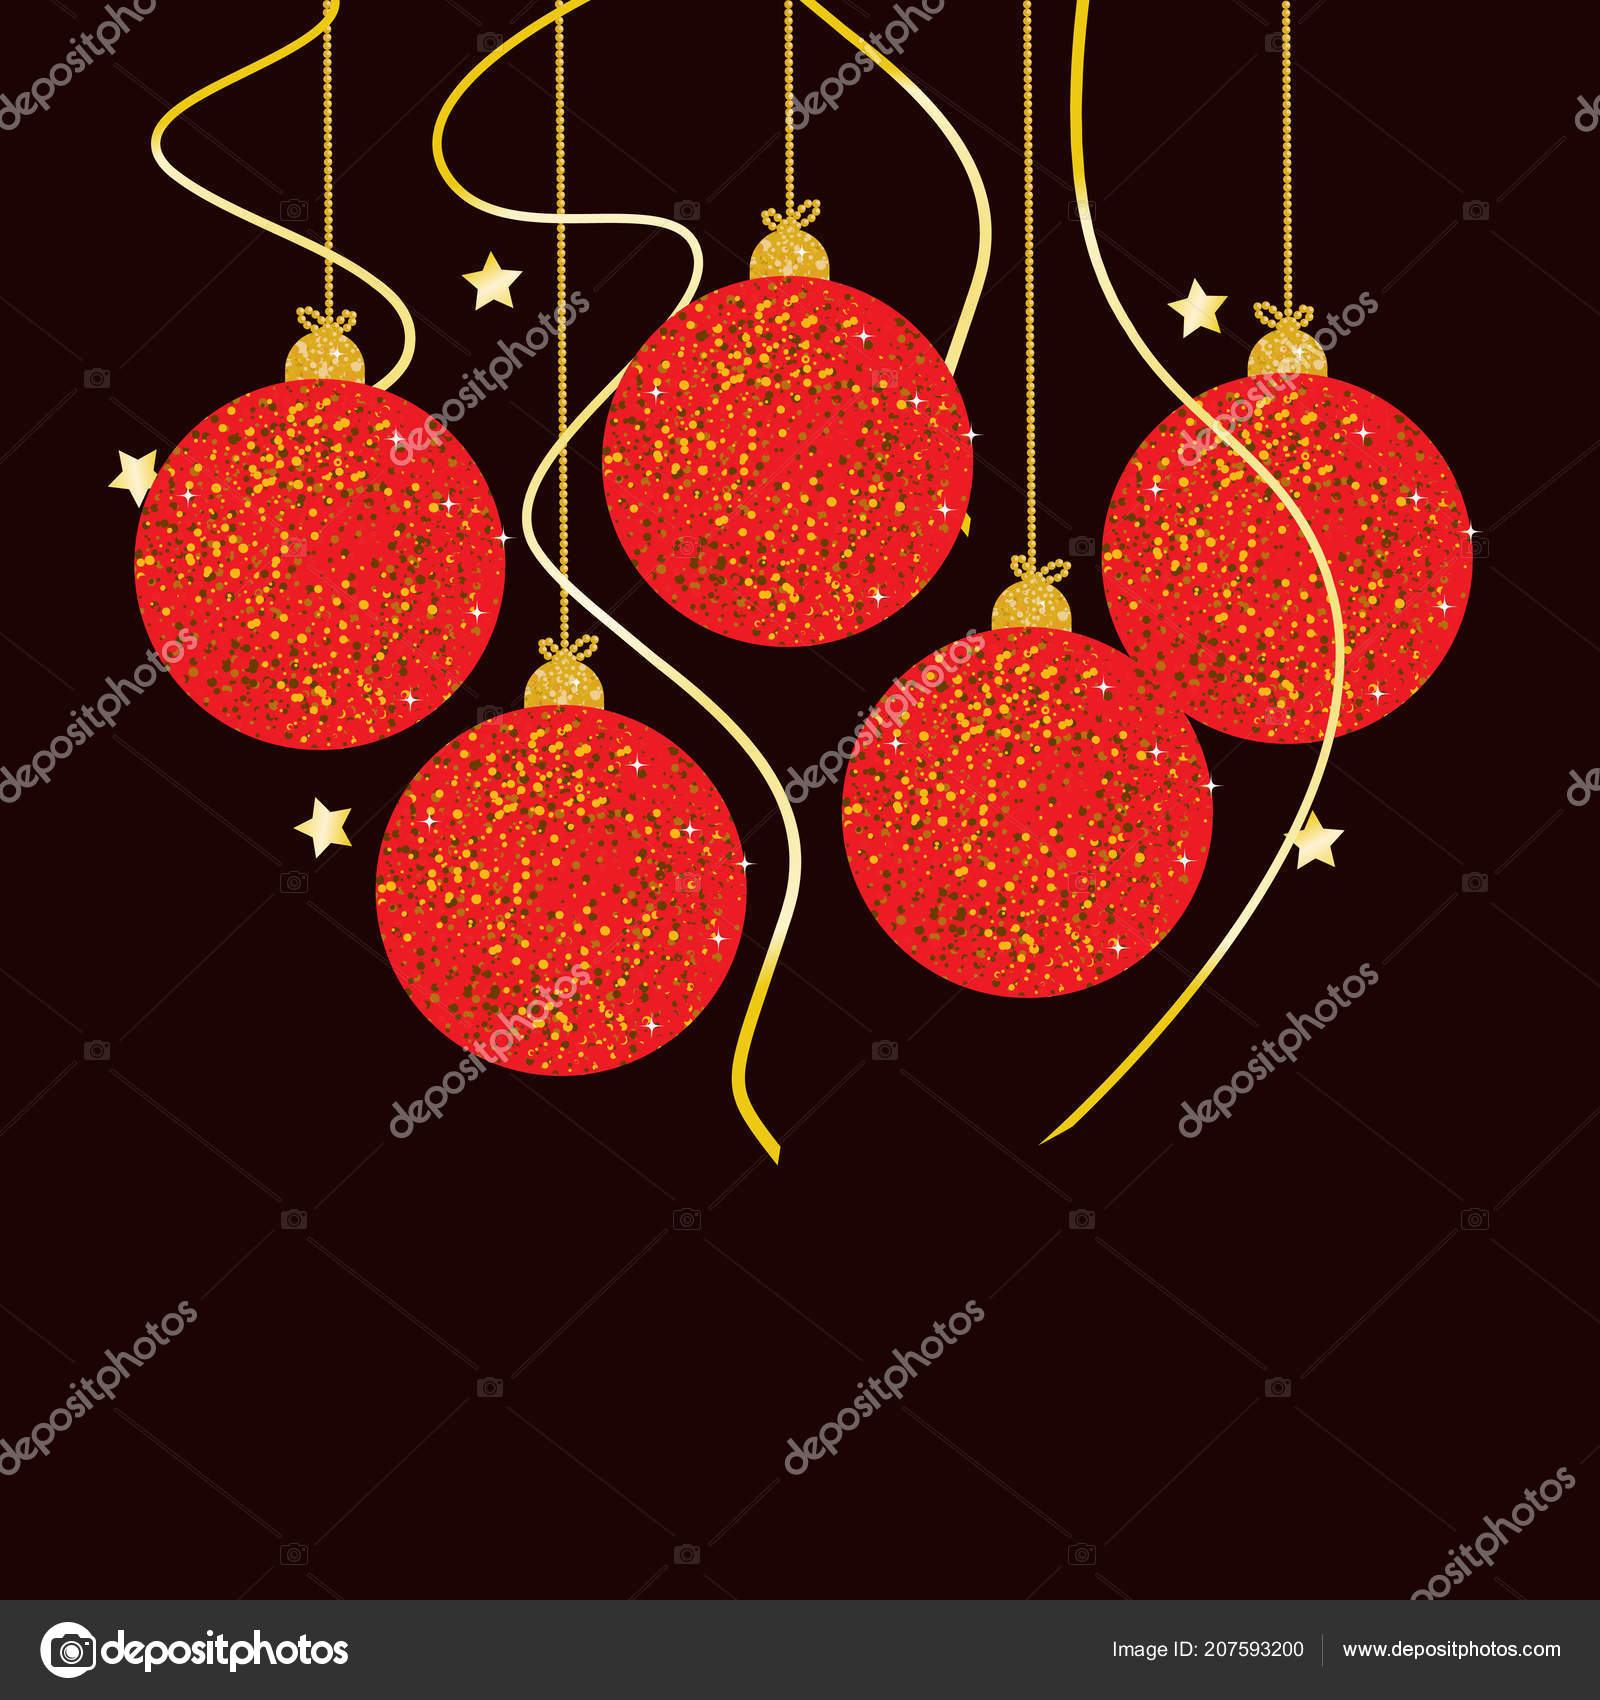 New Year Background Colorful Christmas Balls Greeting Invitation